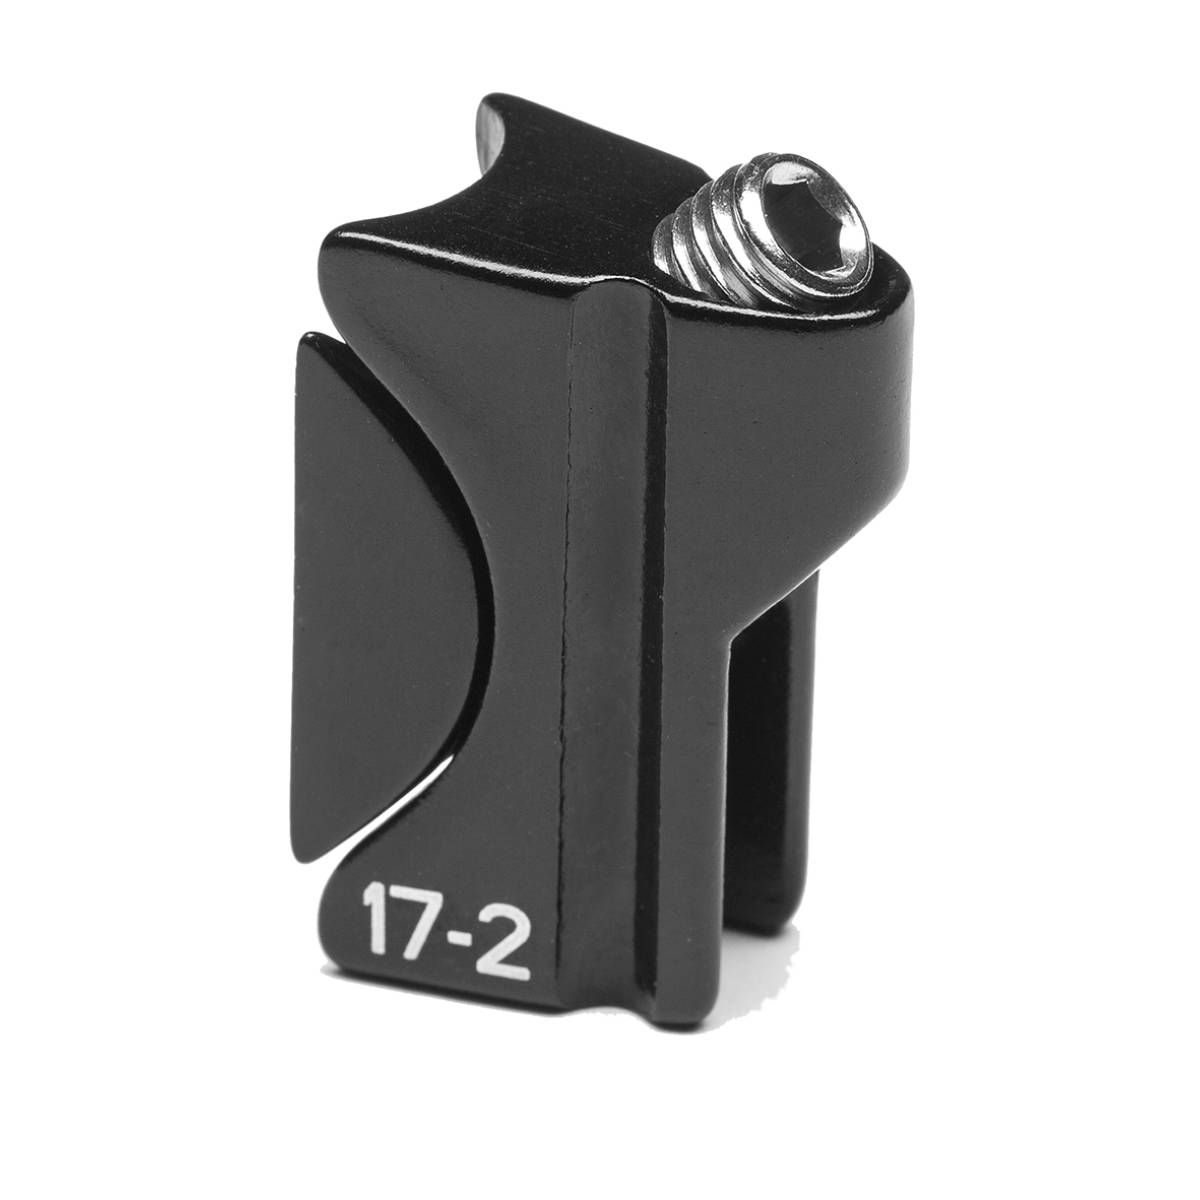 Seat post head for S2, S3, S5 and Classic P2 and Classic P3